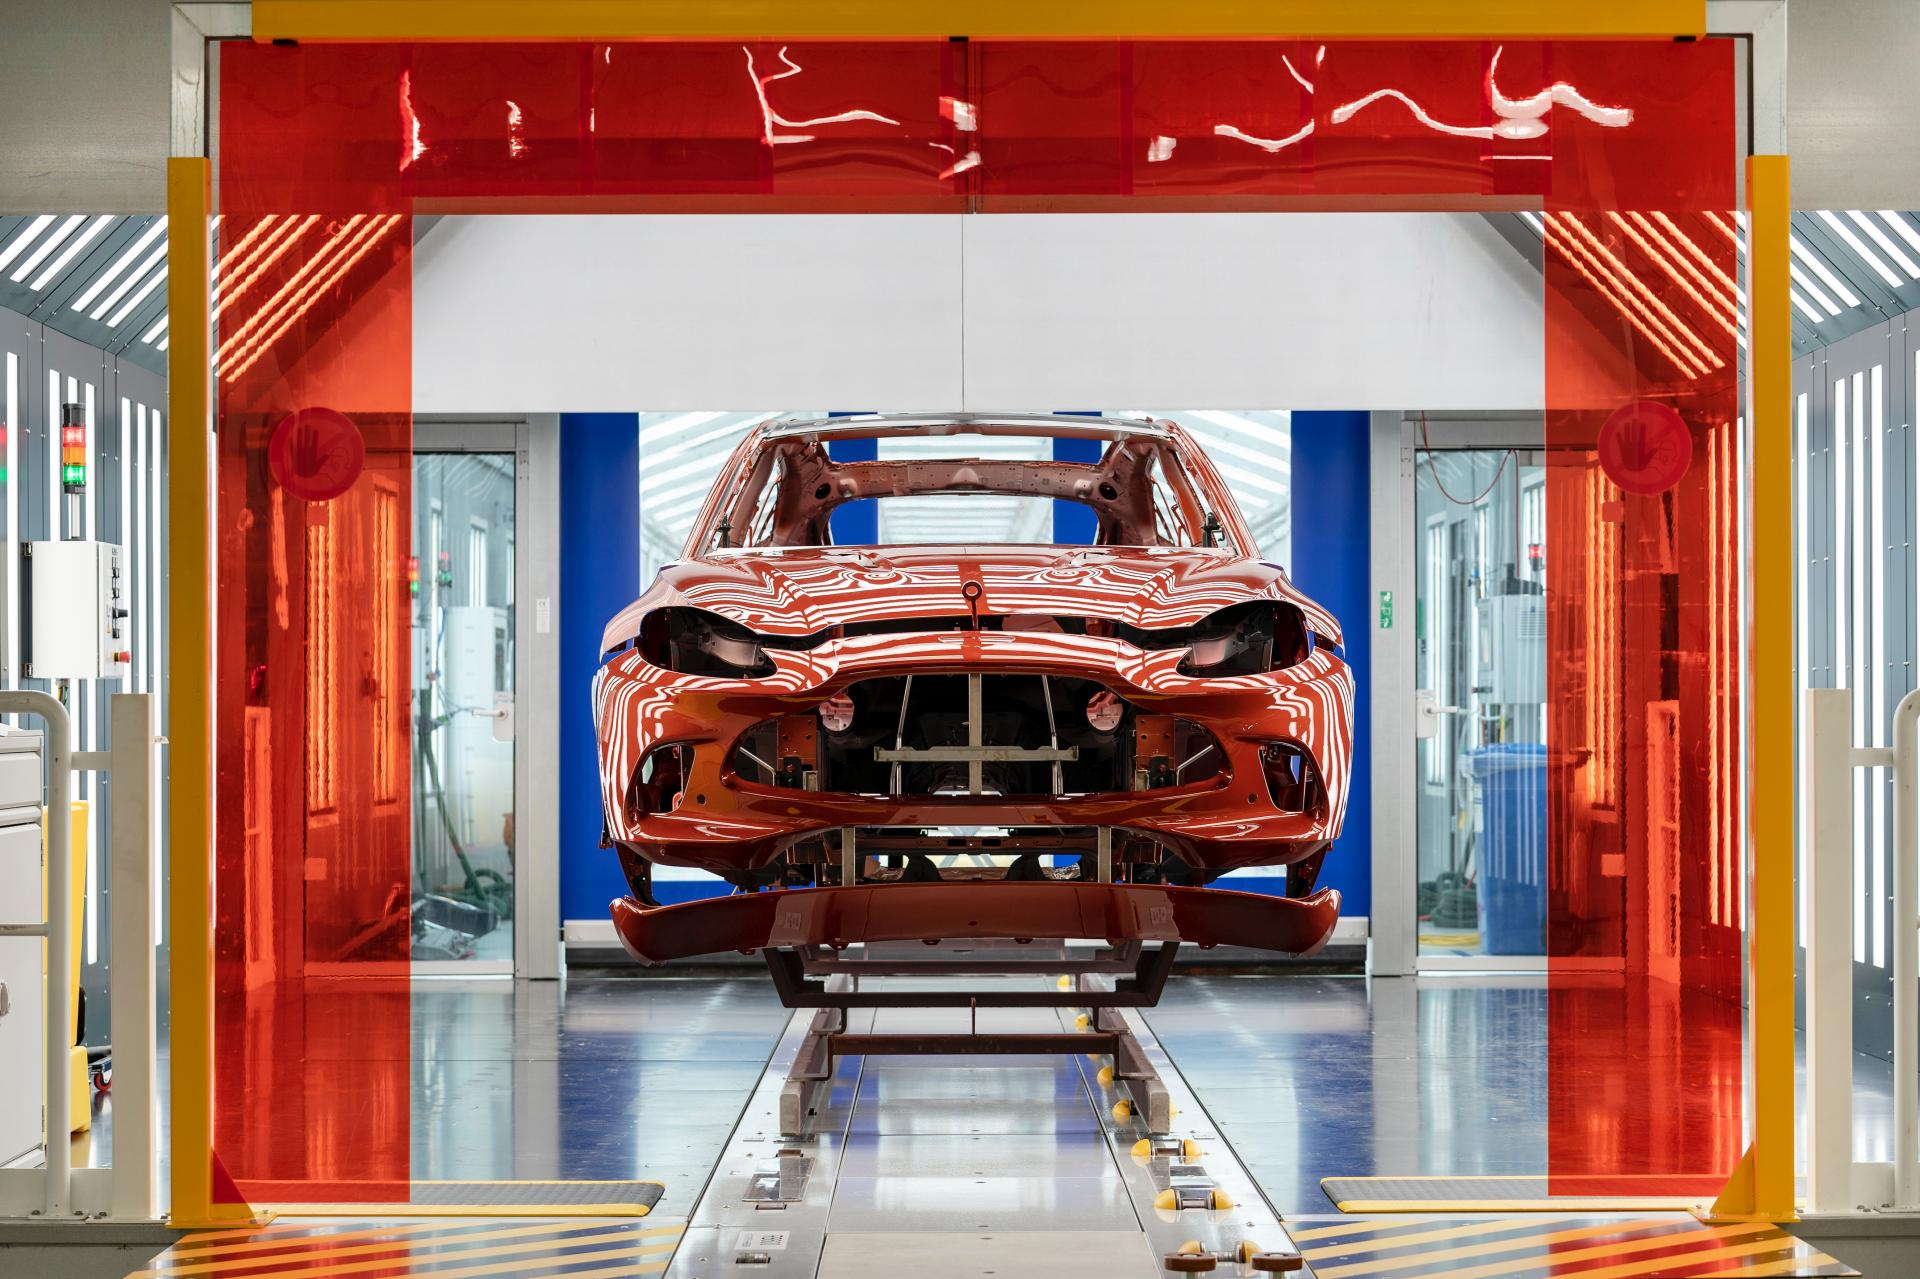 2020 Aston Martin Dbx Rolls Off Assembly Line At New St Athan Plant 2